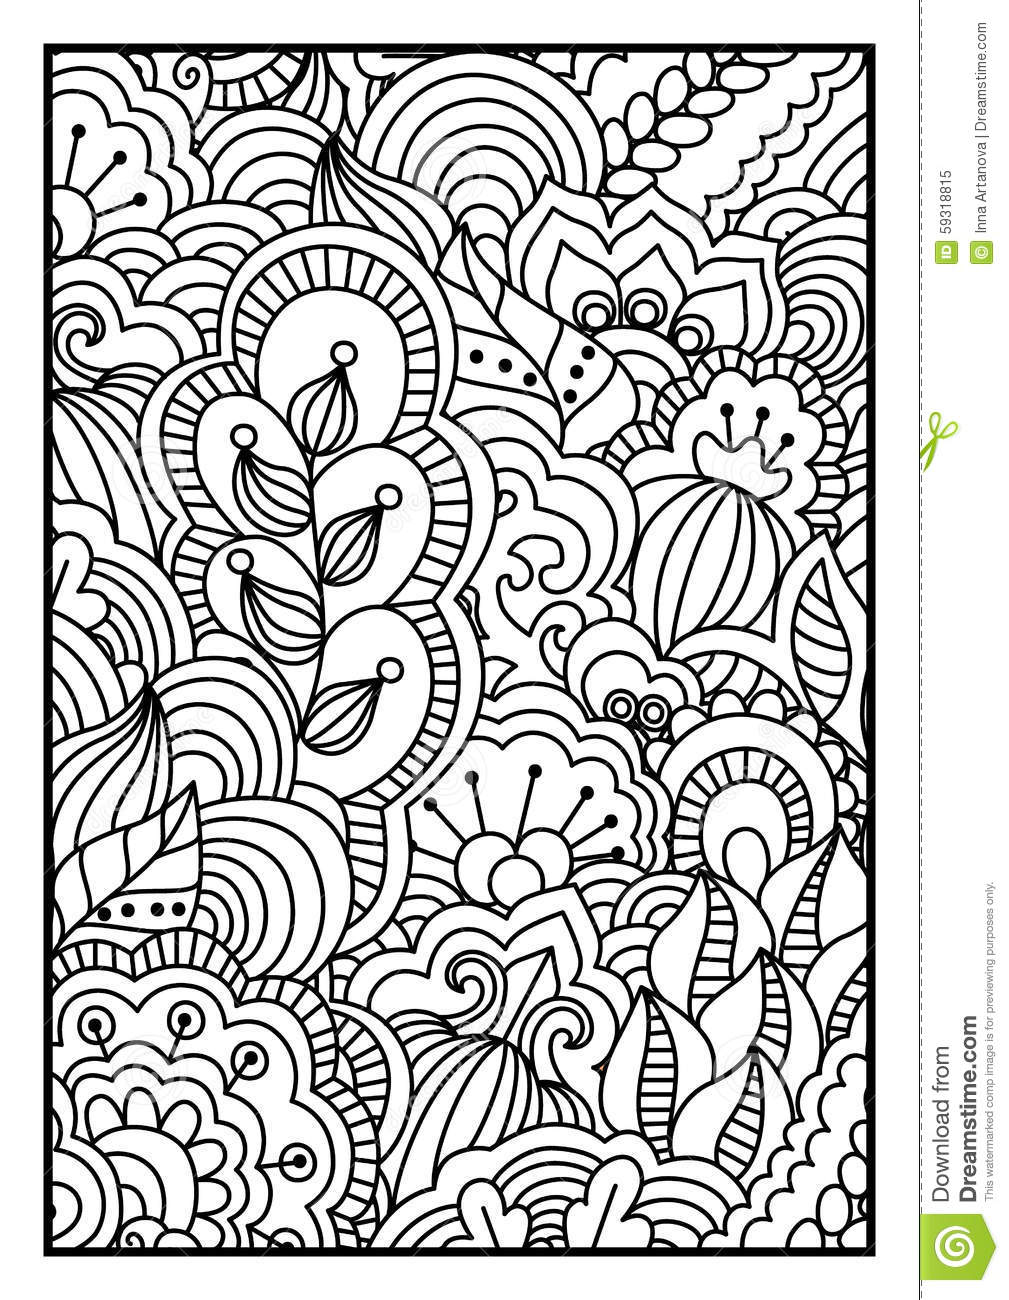 Pattern For Coloring Book. Black And White Background With ...  Pattern For Col...